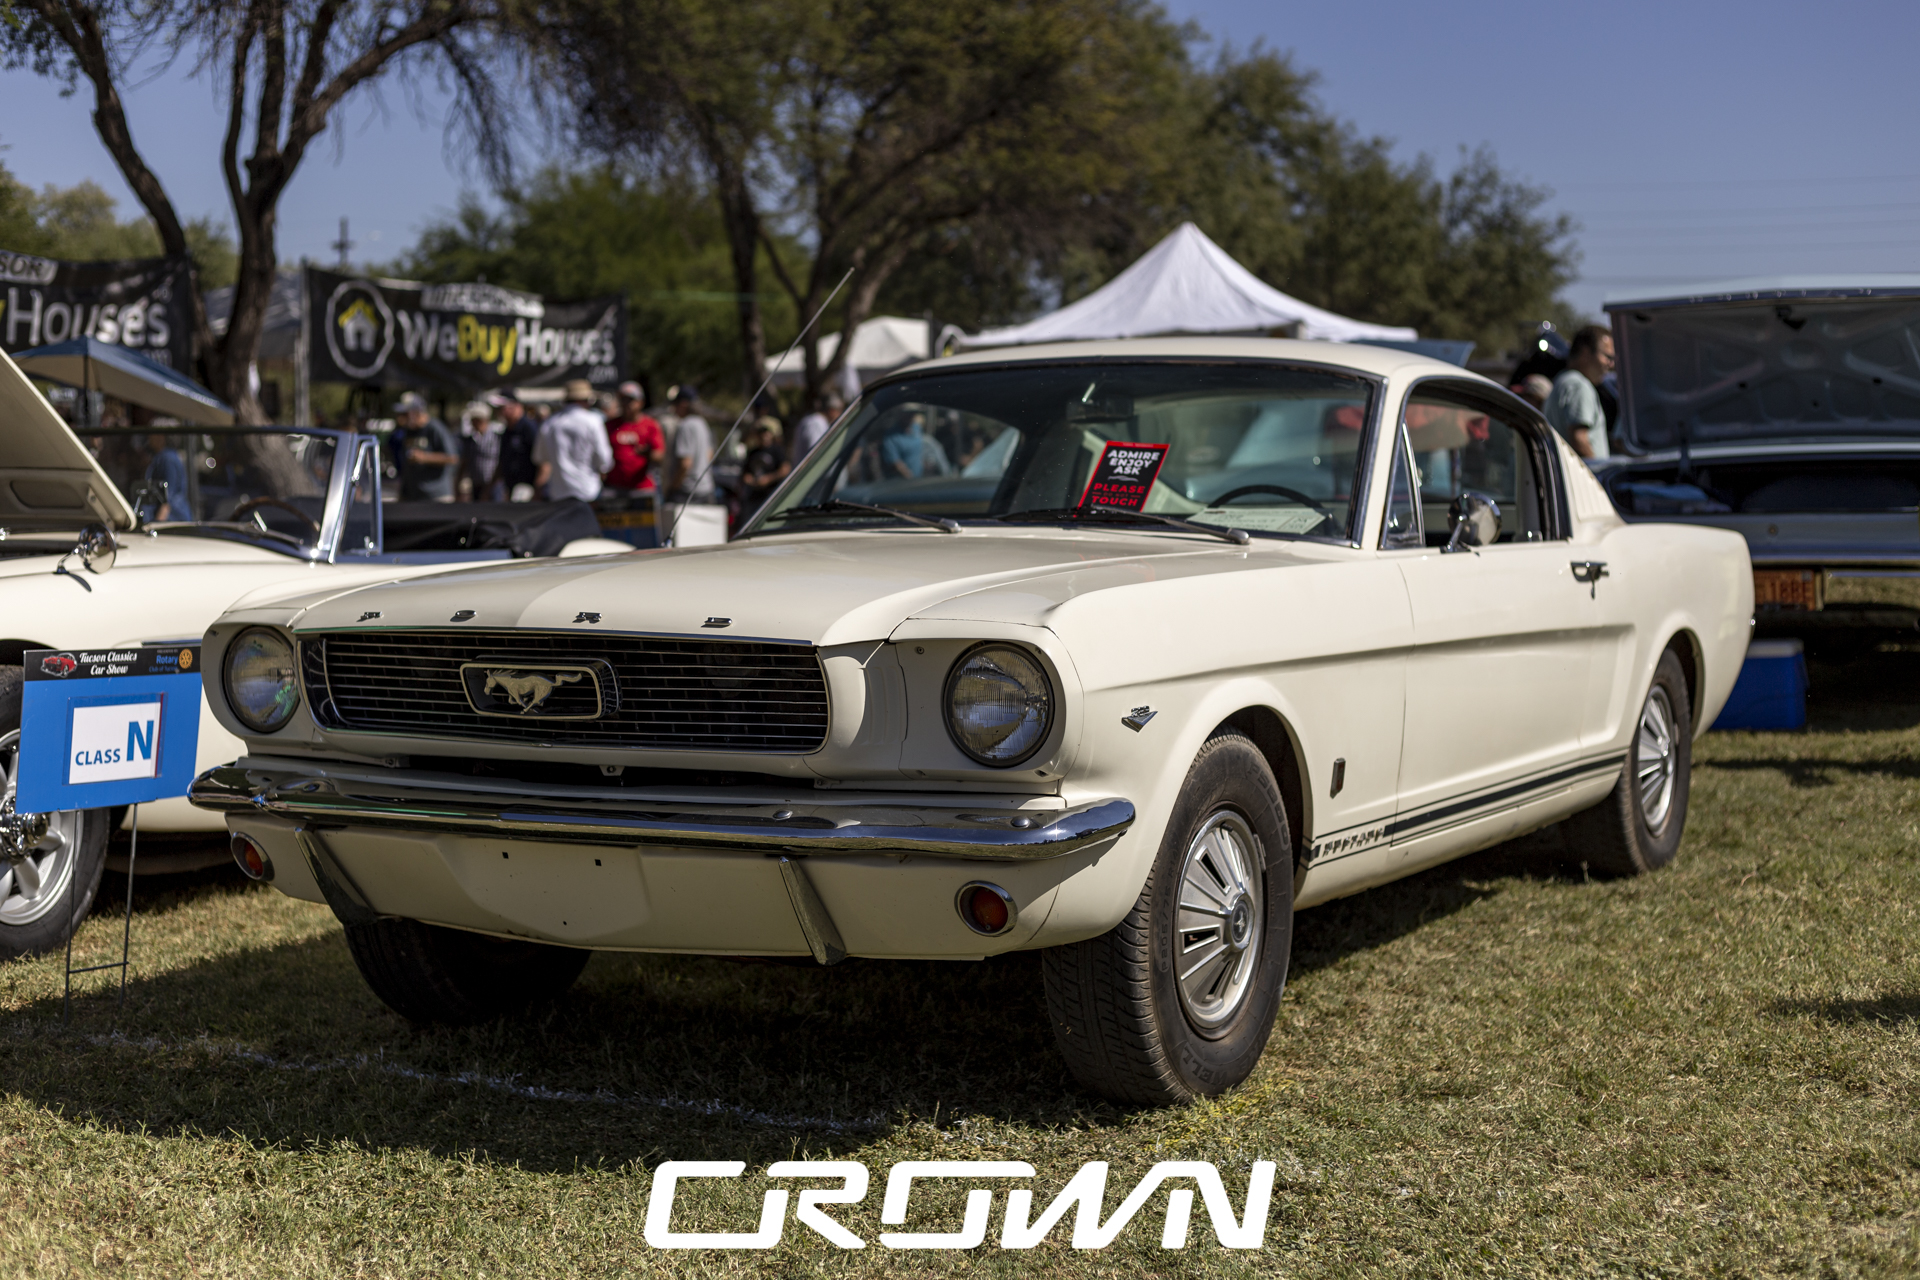 1965 Ford Mustang GT Fastback at Tucson Classics Car Show